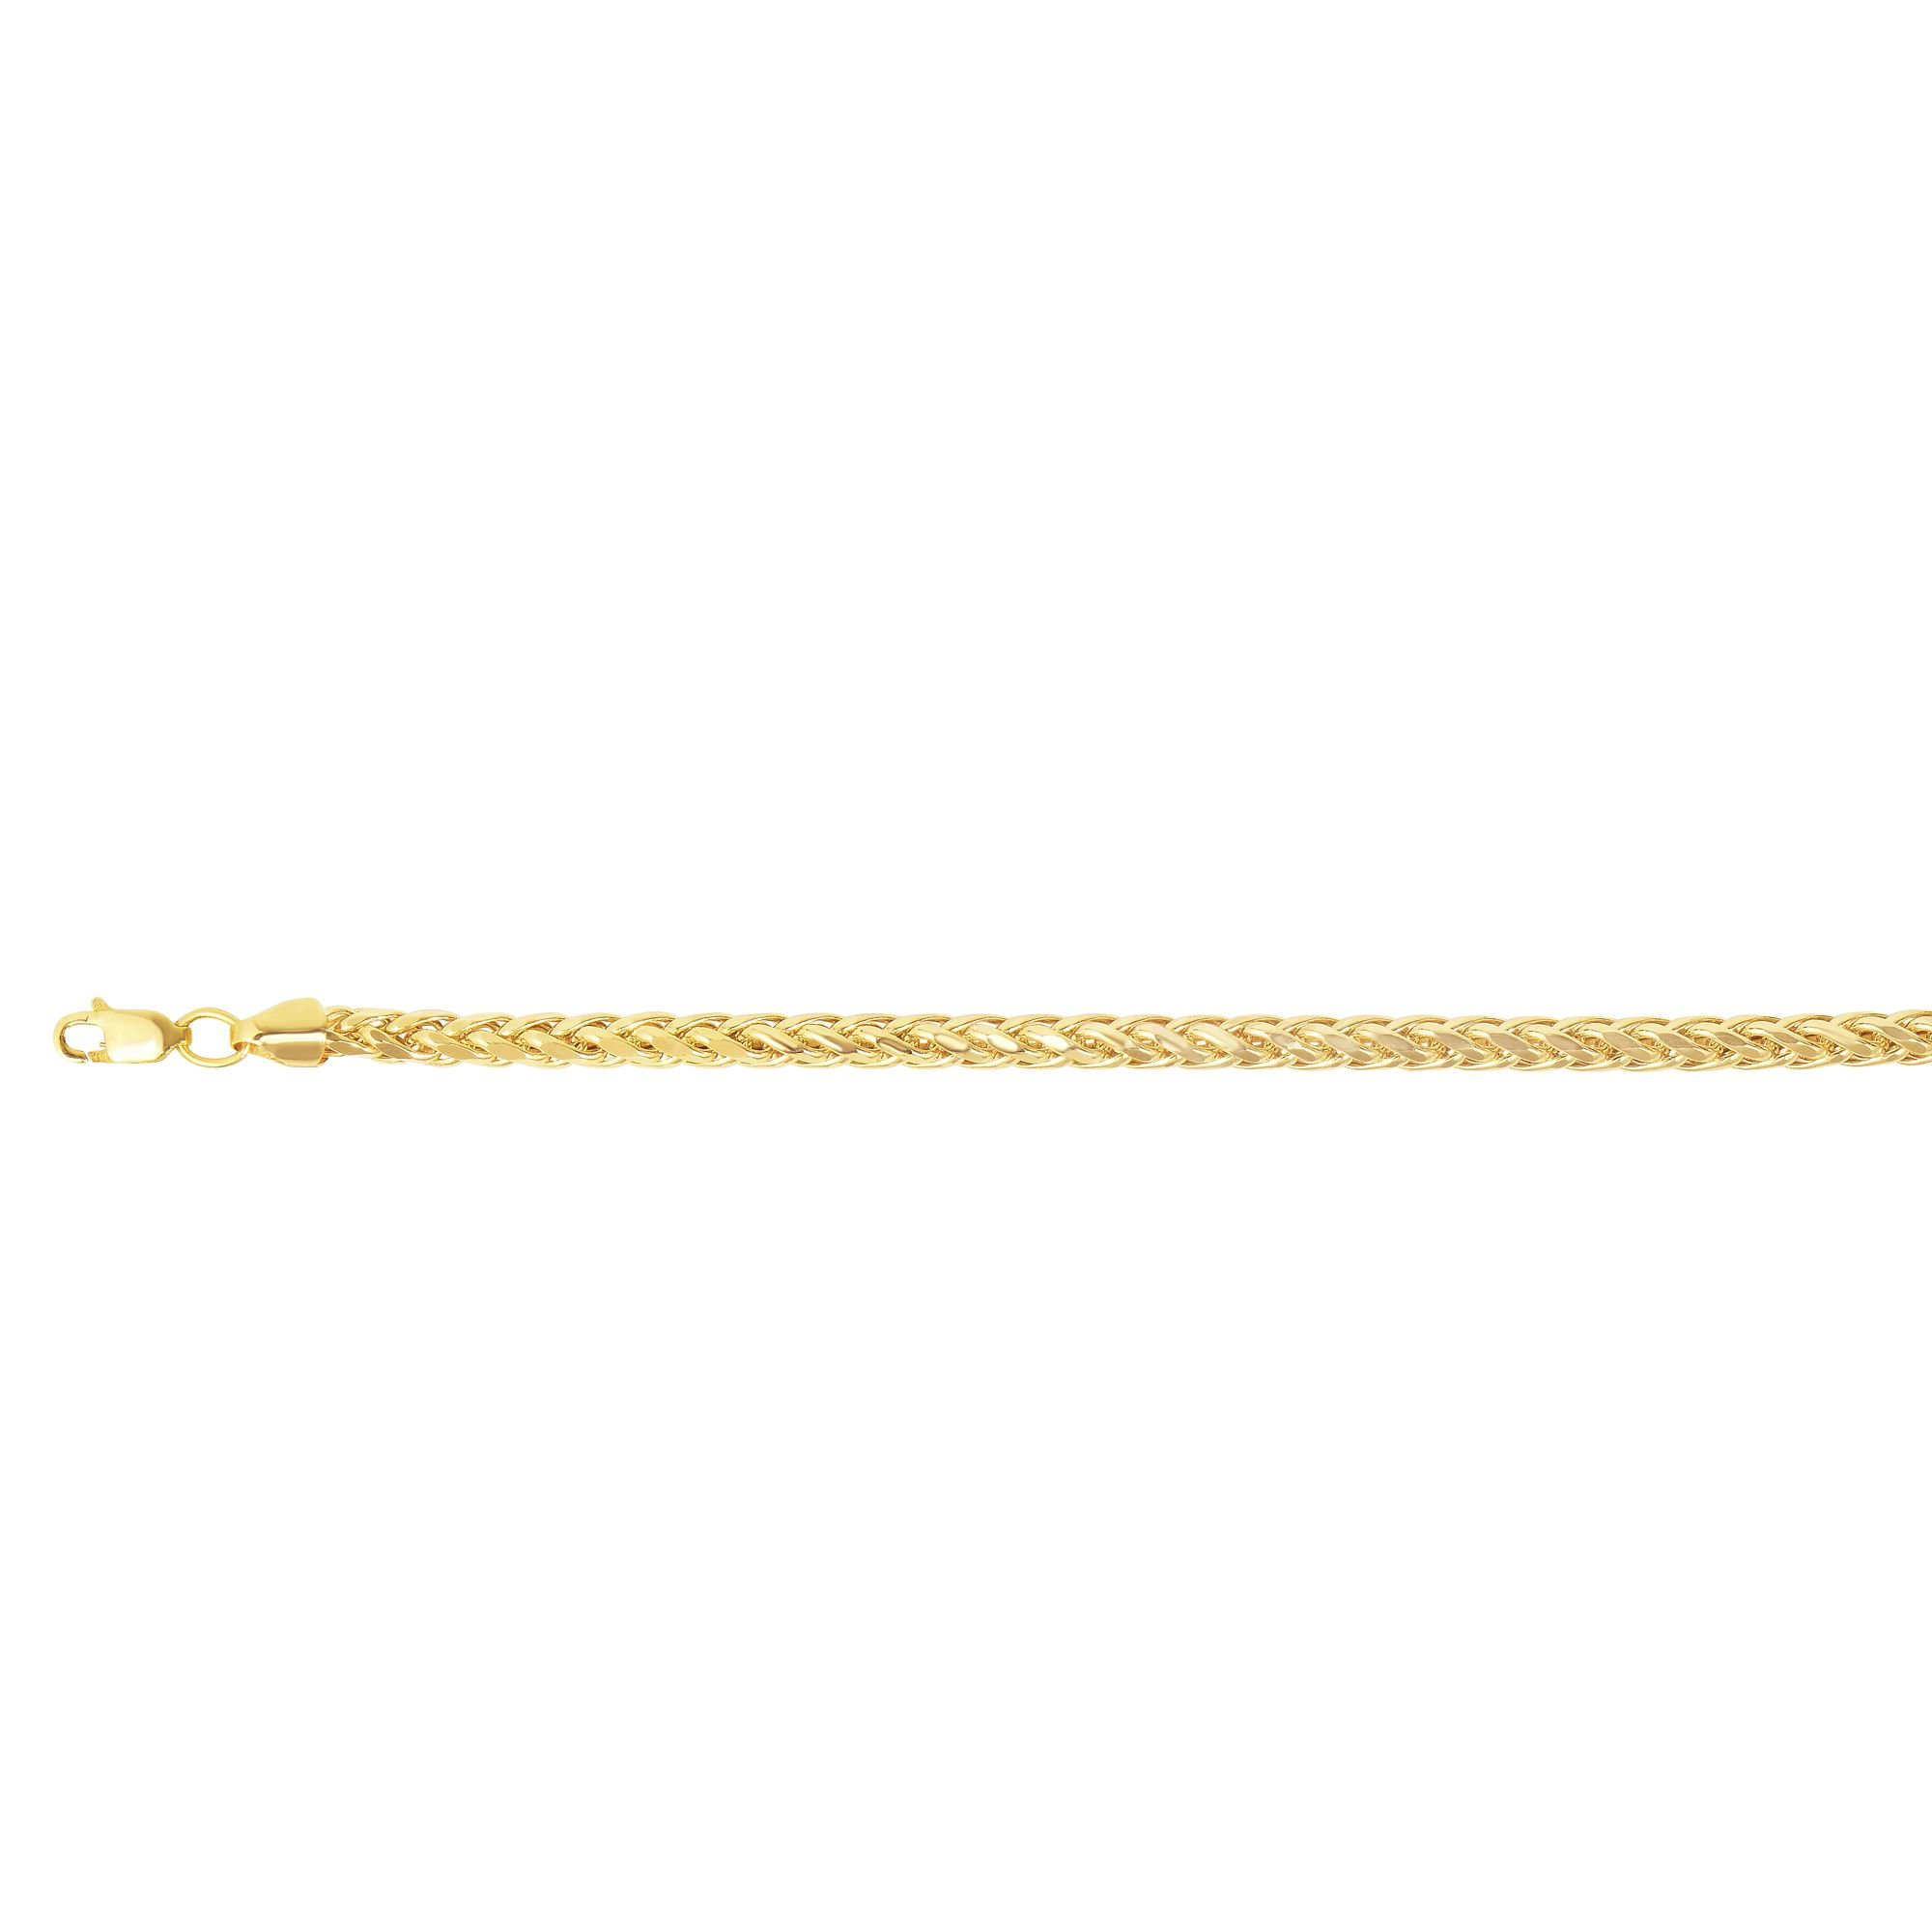 14K Yellow Gold 5mm Round Franco Chain Diamond Cut Semi-Solid 8.75'' Long Bracelet with Lobster Clasp